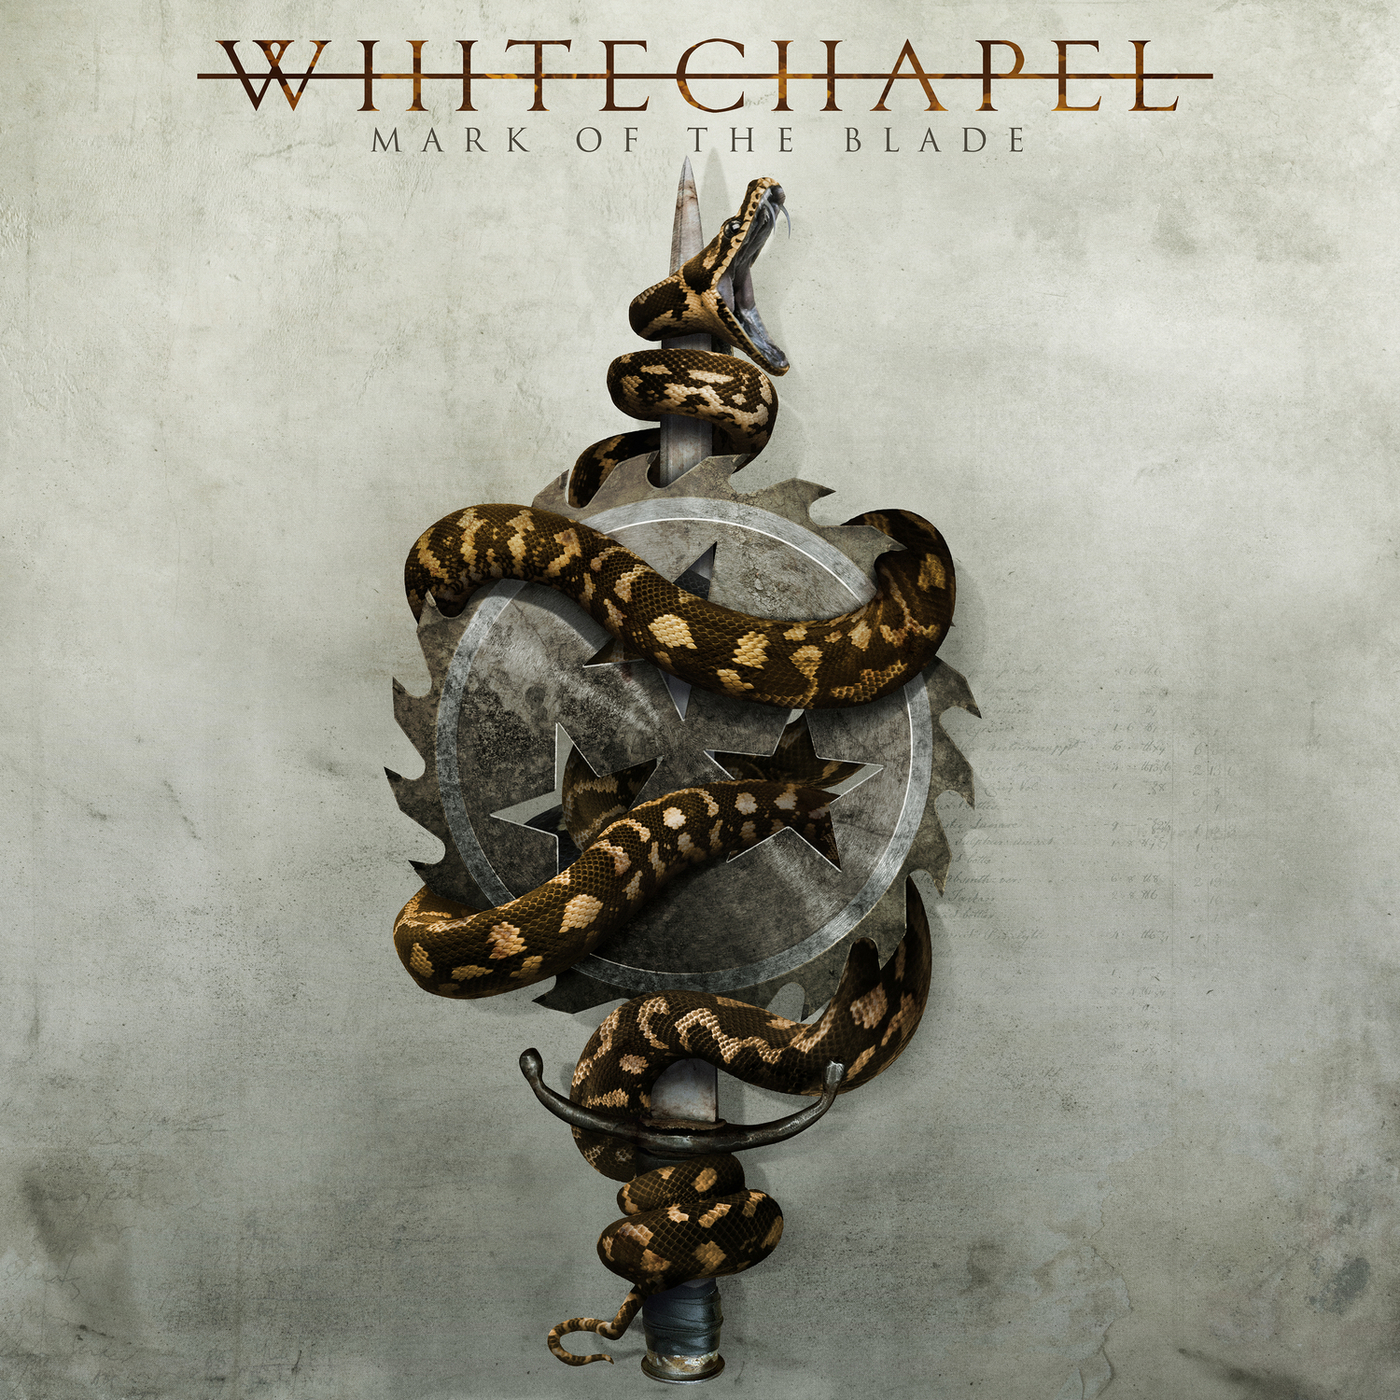 Whitechapel - Mark of the Blade [single] (2016)